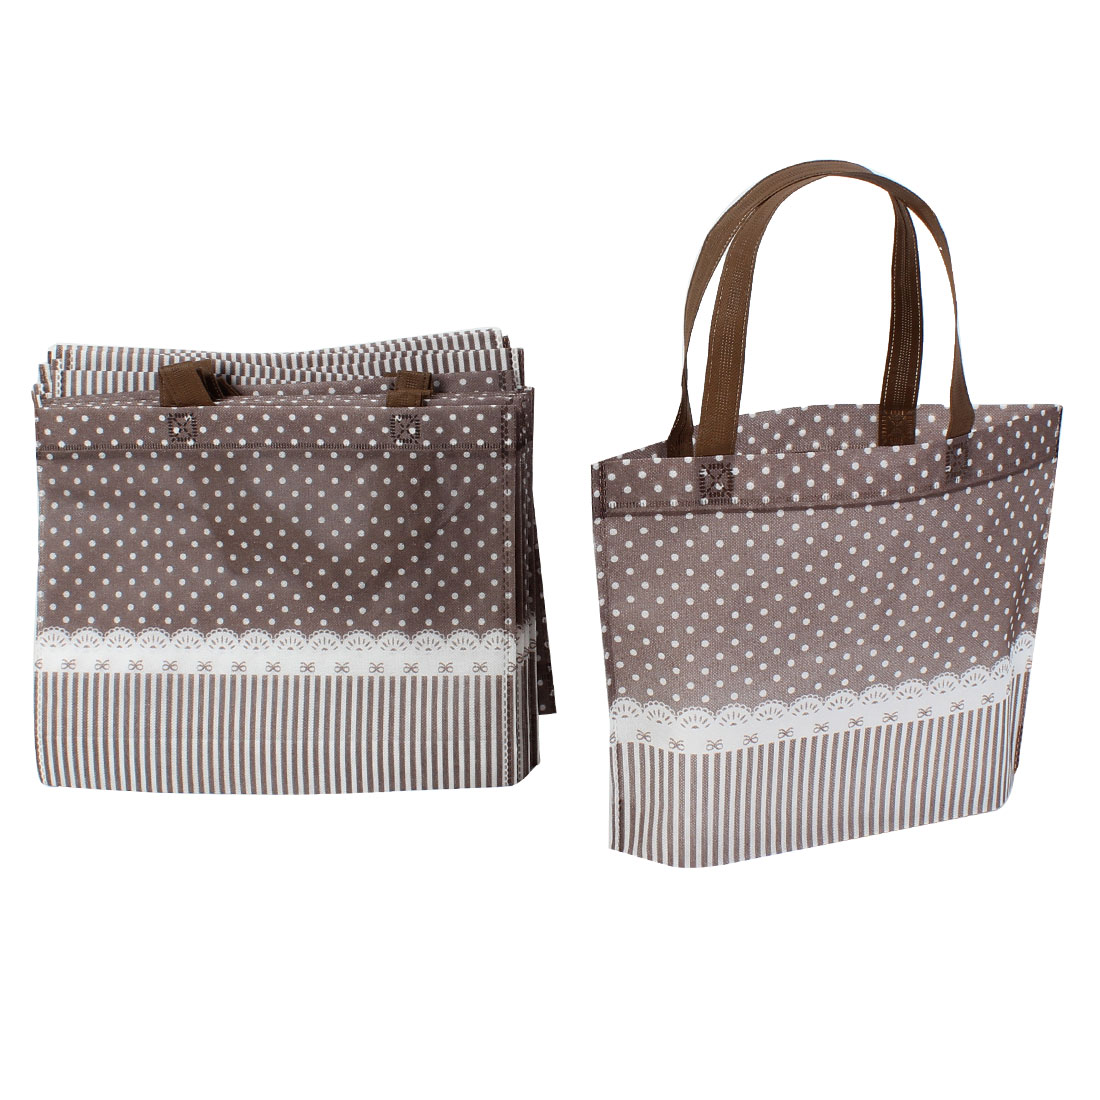 Non Woven Dots Printed Shopping Bag 35cm x 28cm Rosybrown 20 Pcs